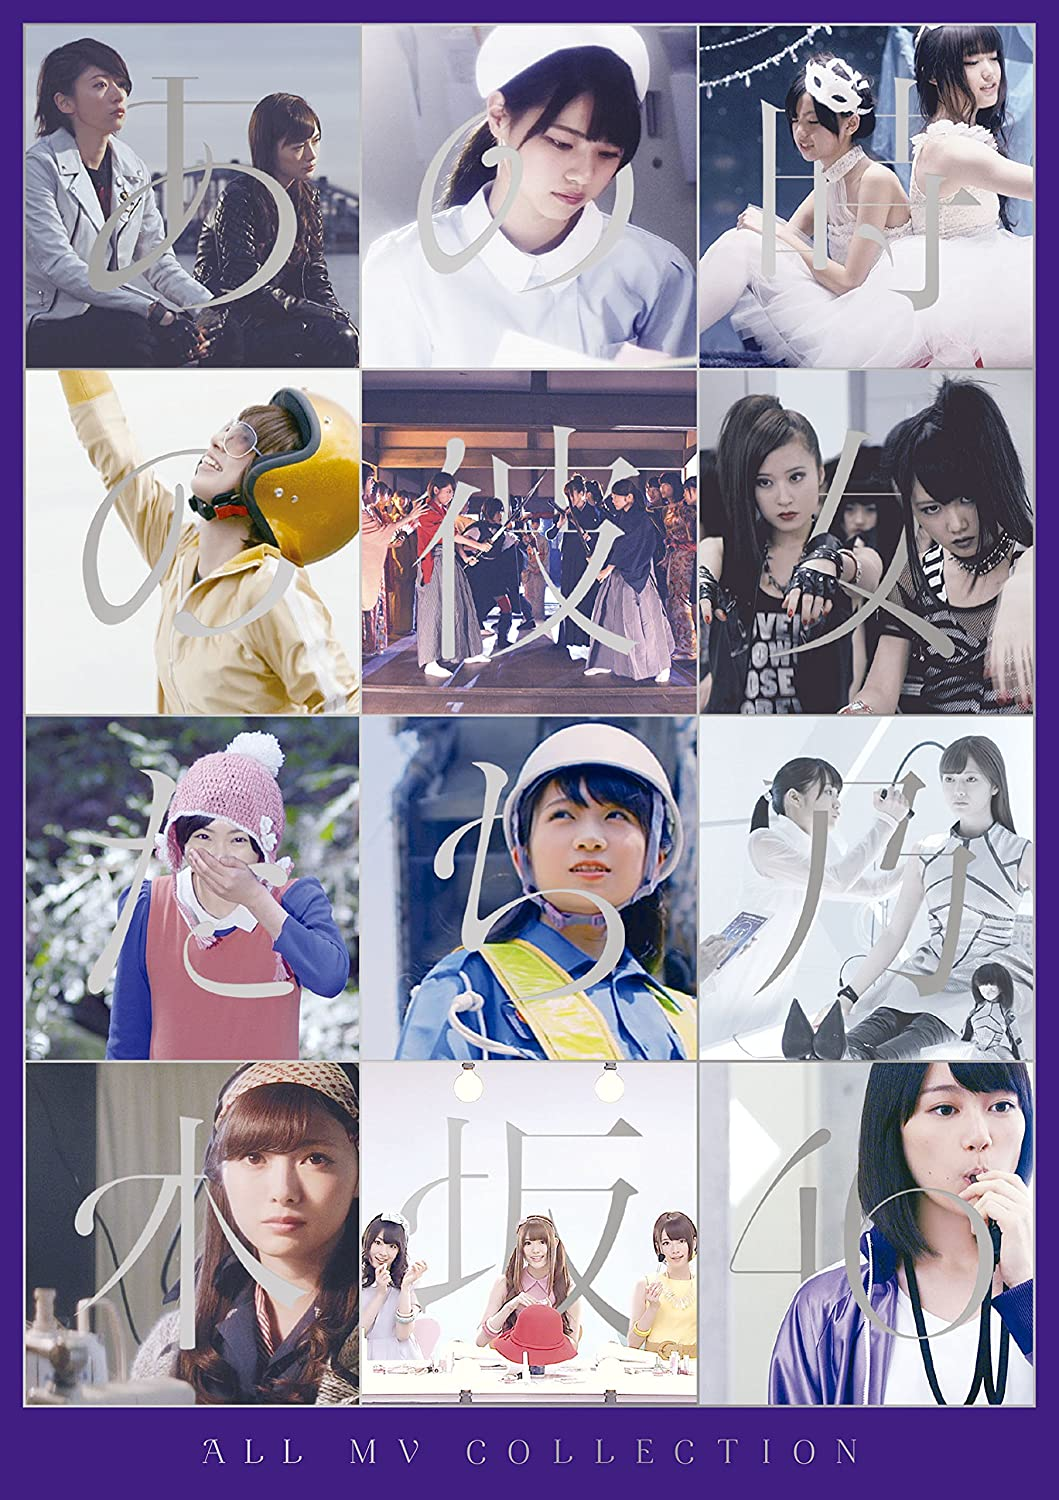 ALL MV COLLECTIONあの時の彼女たち(完全生産限定盤) [DVD] B017SG3P6O